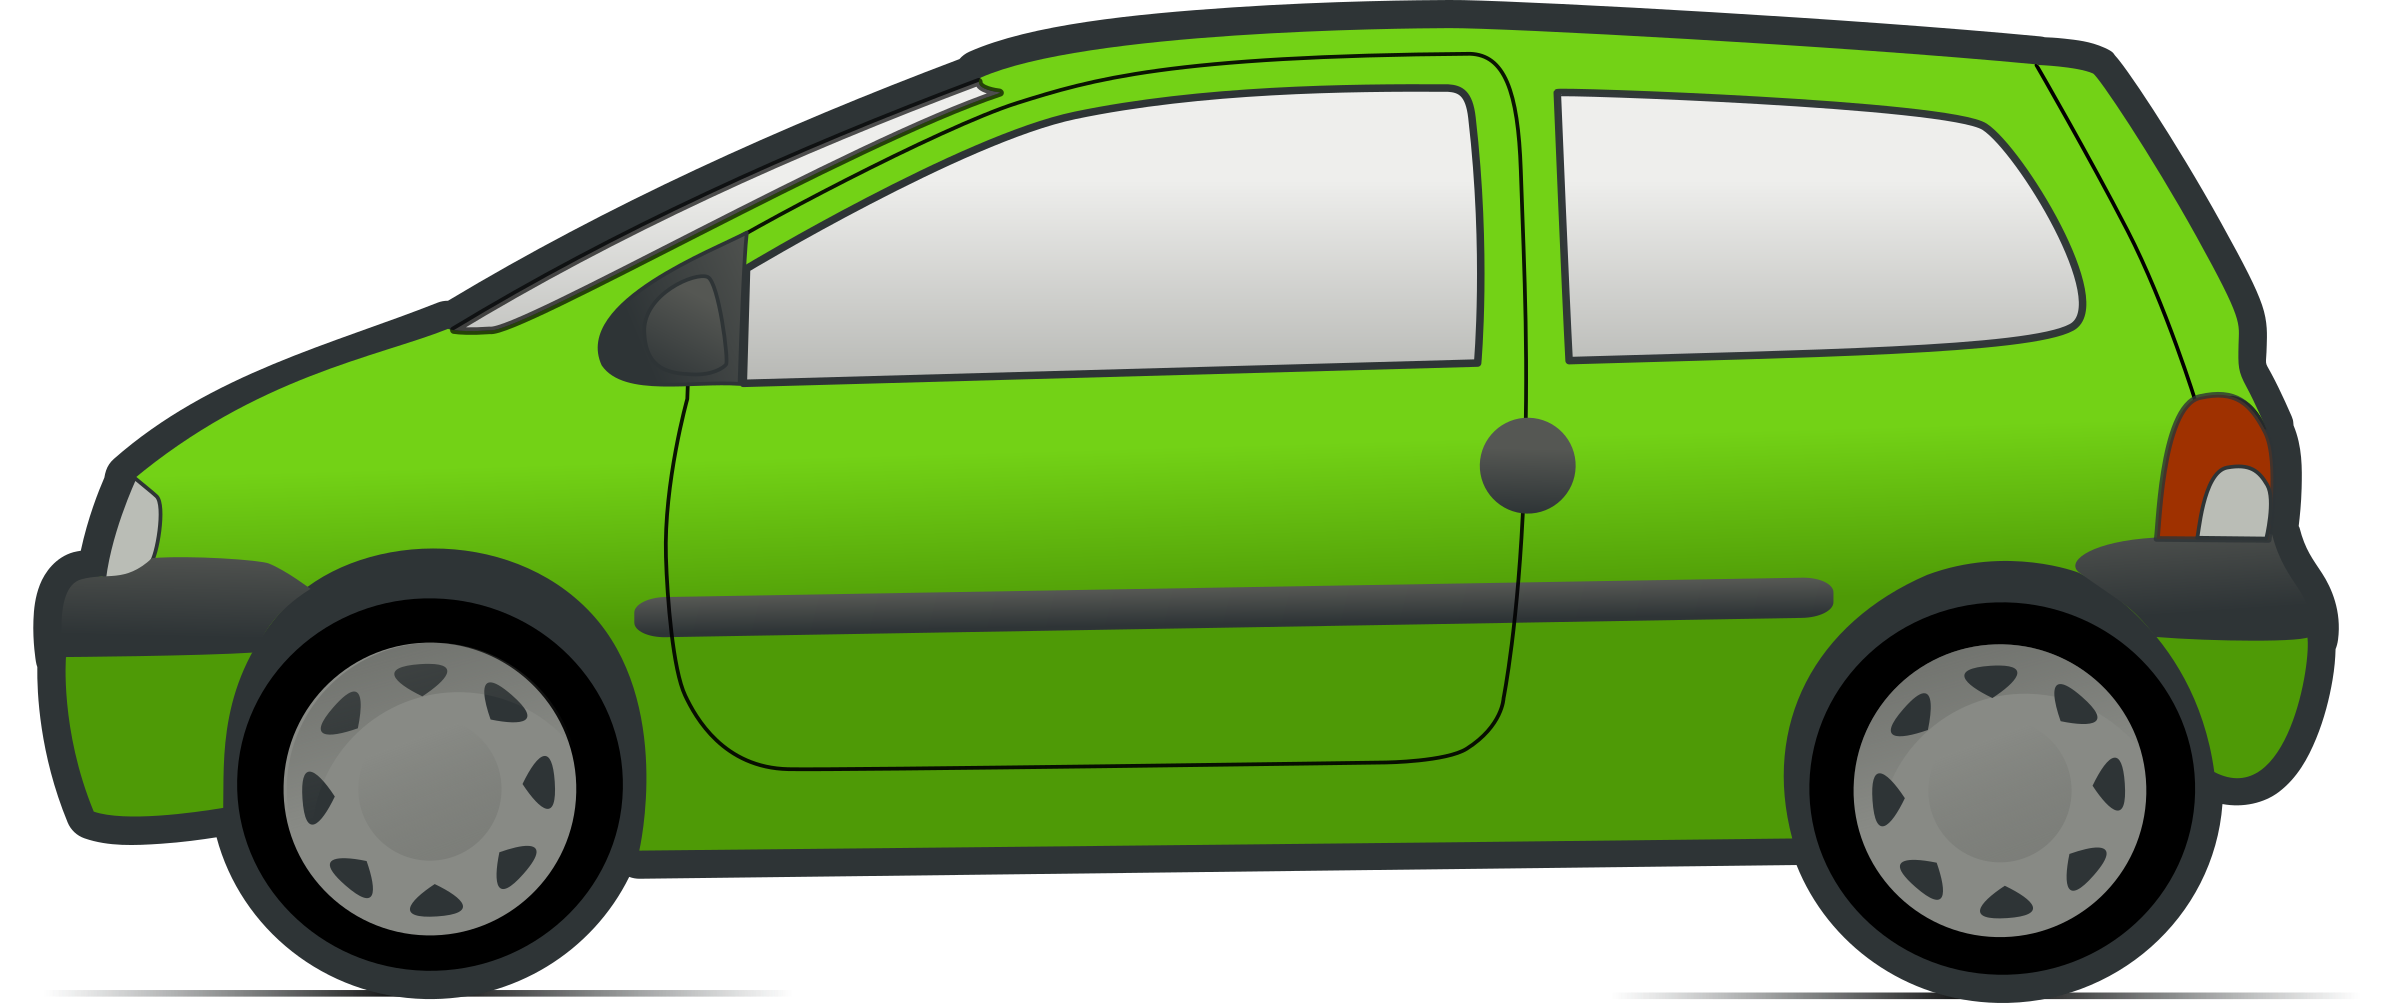 Red and renault twingo. Clipart cars green